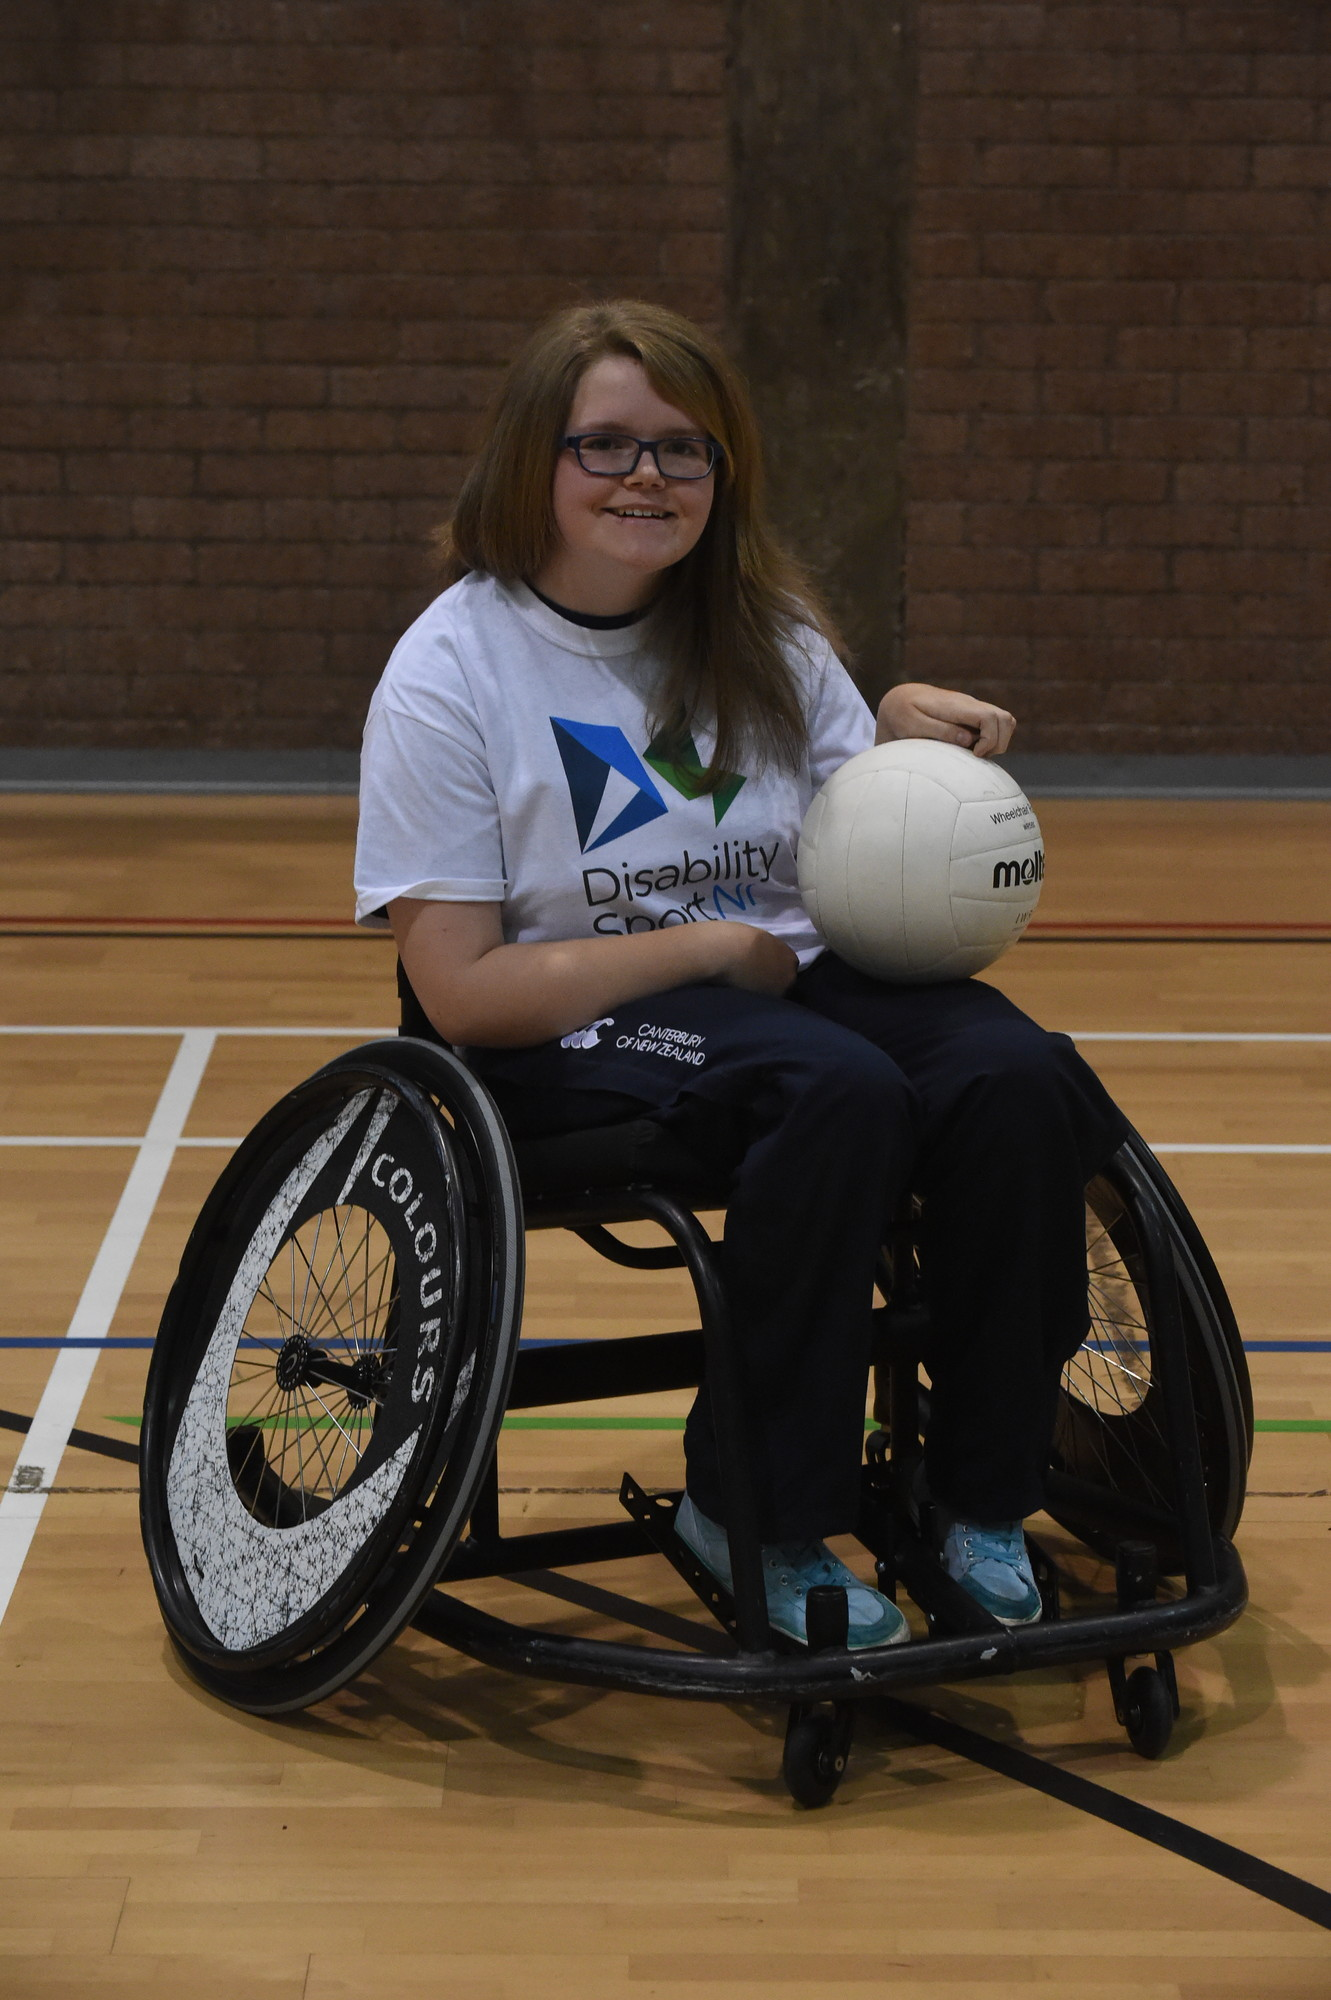 Claire getting ready for a game of Wheelchair Rugby.